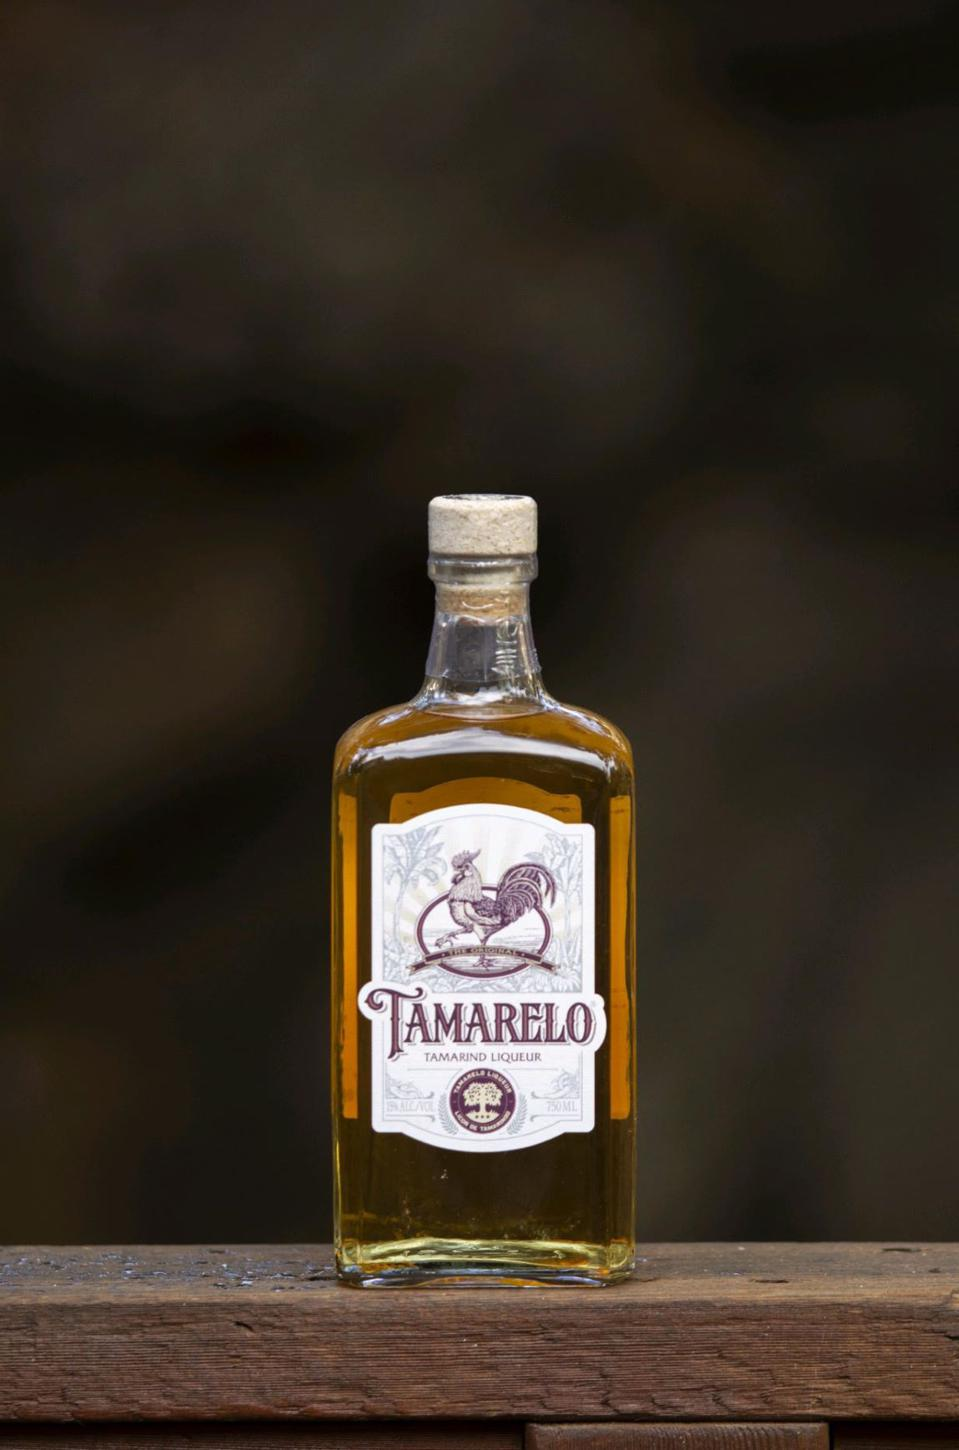 Tamarelo is made with real tamarinds.